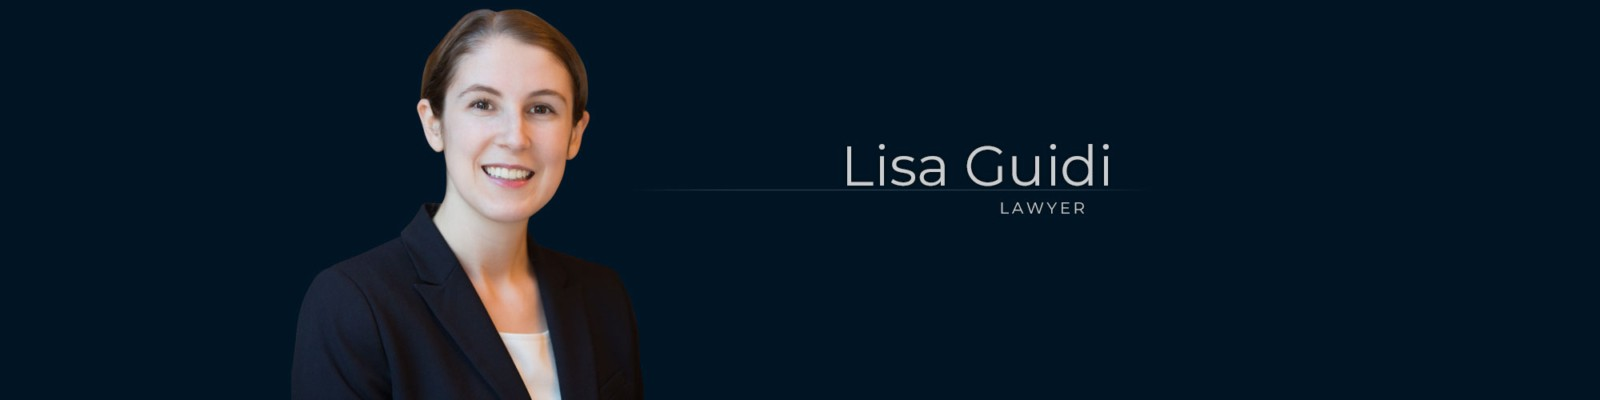 Lisa Guidi – Lawyer at Dominion GovLaw LLP